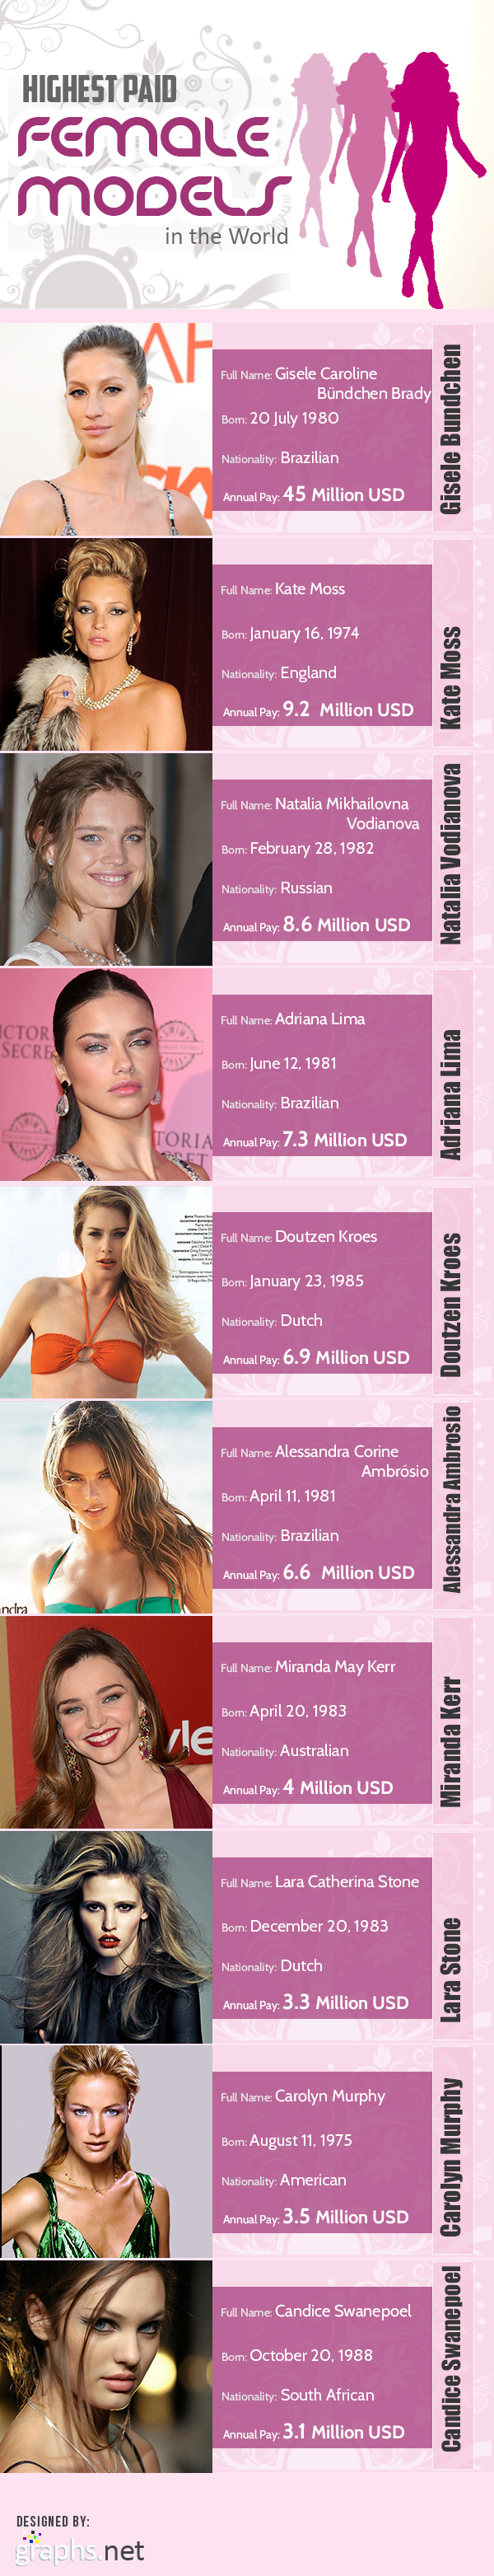 Highest Paid Female Models in the World